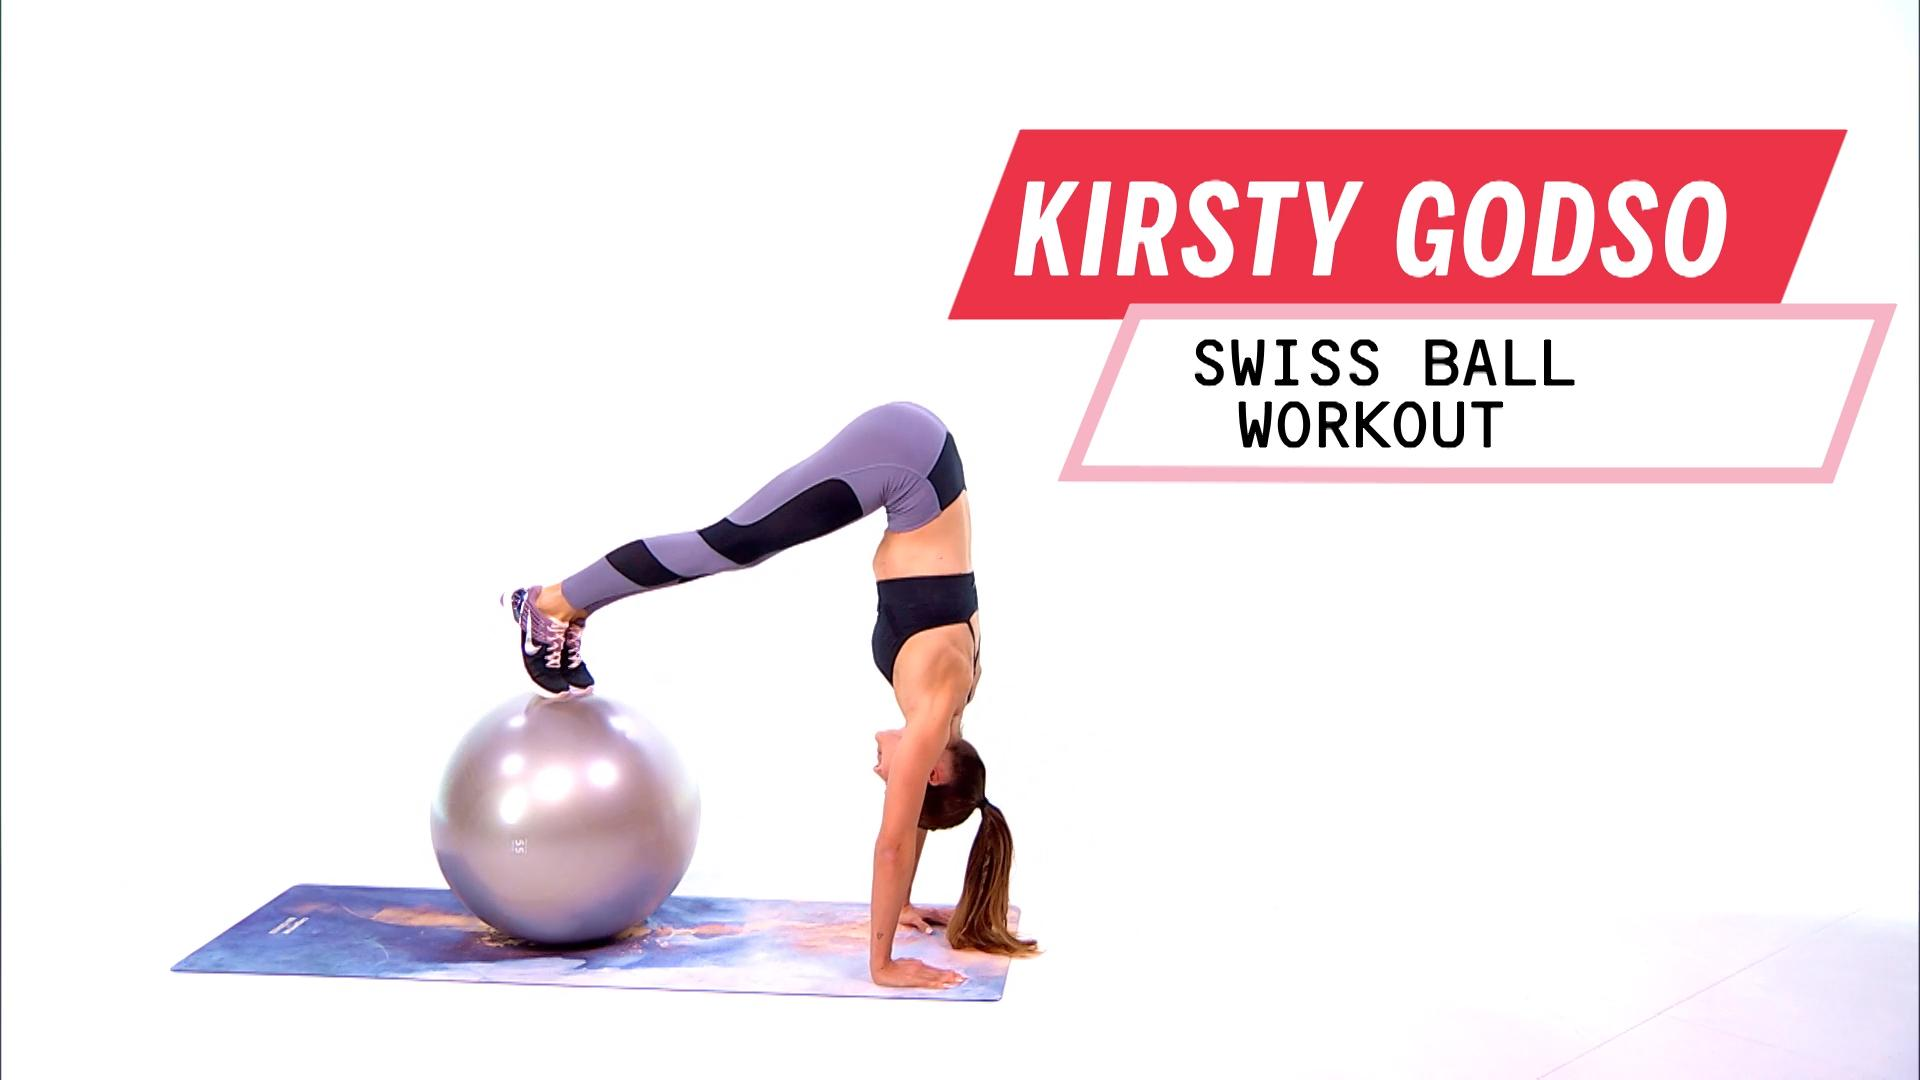 When You're Short on Time, Try This Customizable Workout by Kirsty Godso